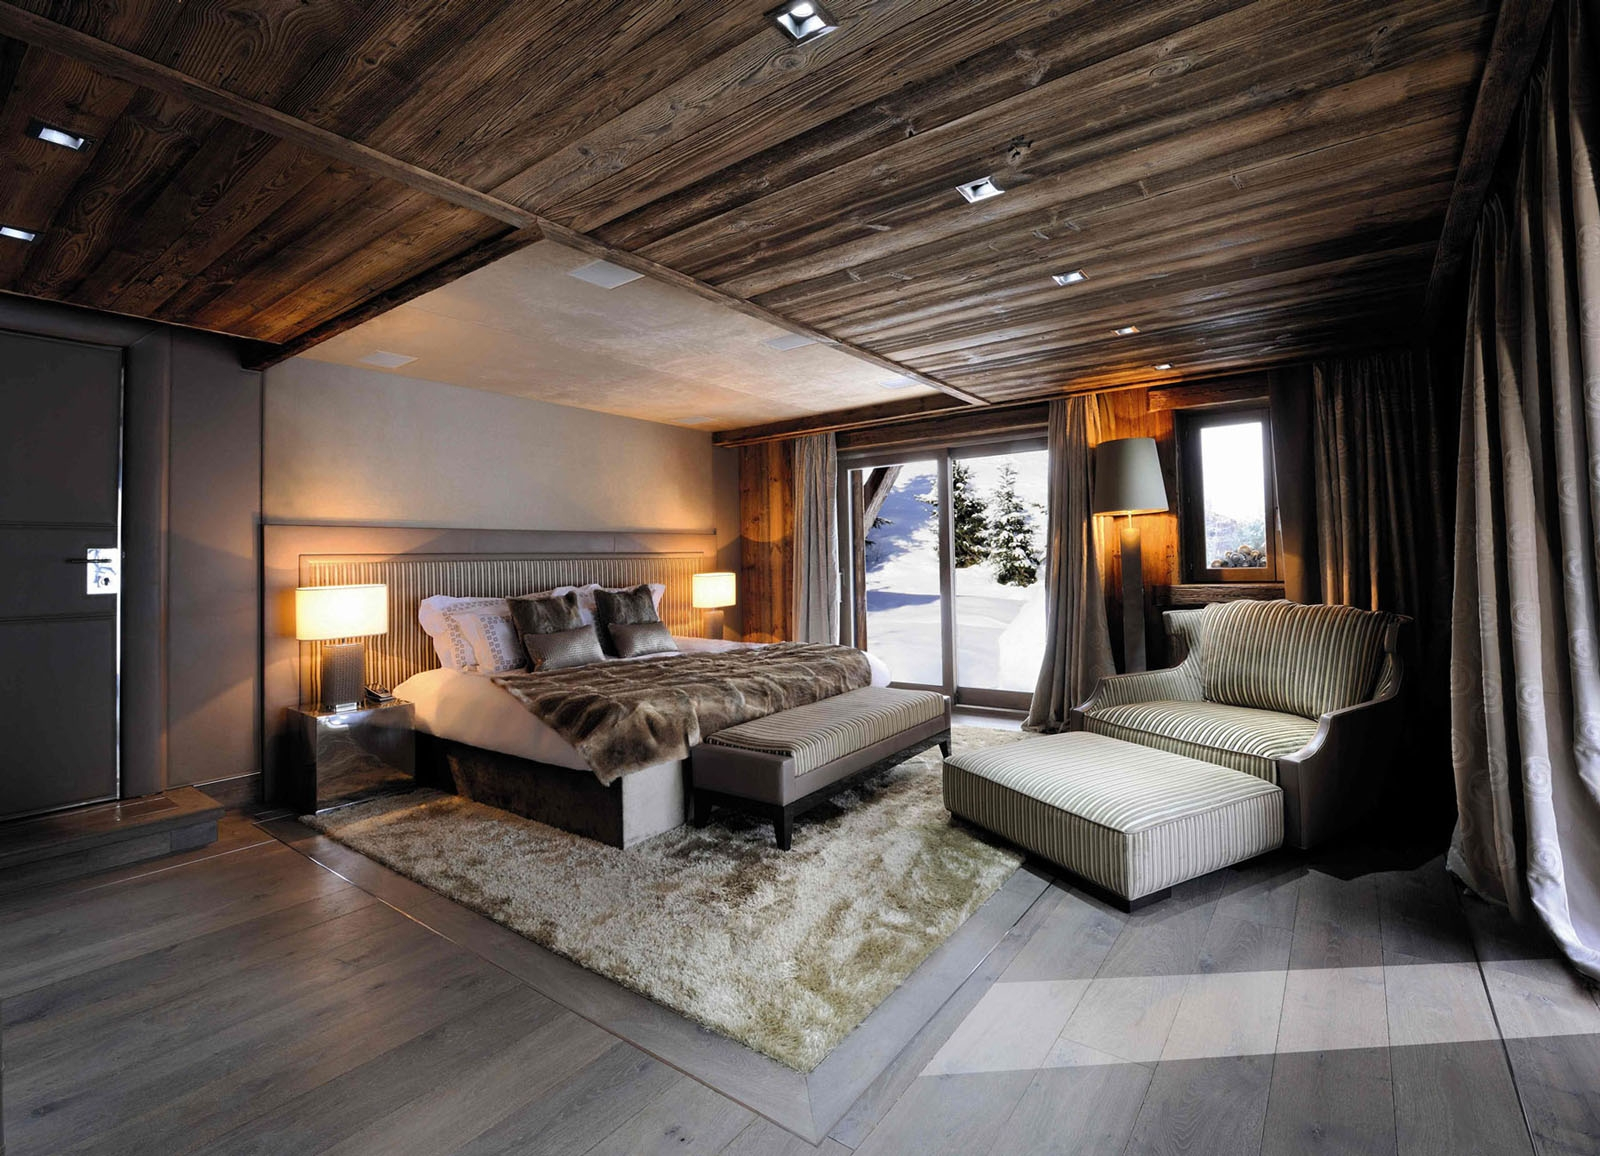 Chic Modern Rustic Chalet In The Rhne Alpes Idesignarch intended for Incredible along with Lovely rustic master bedroom for Your own home